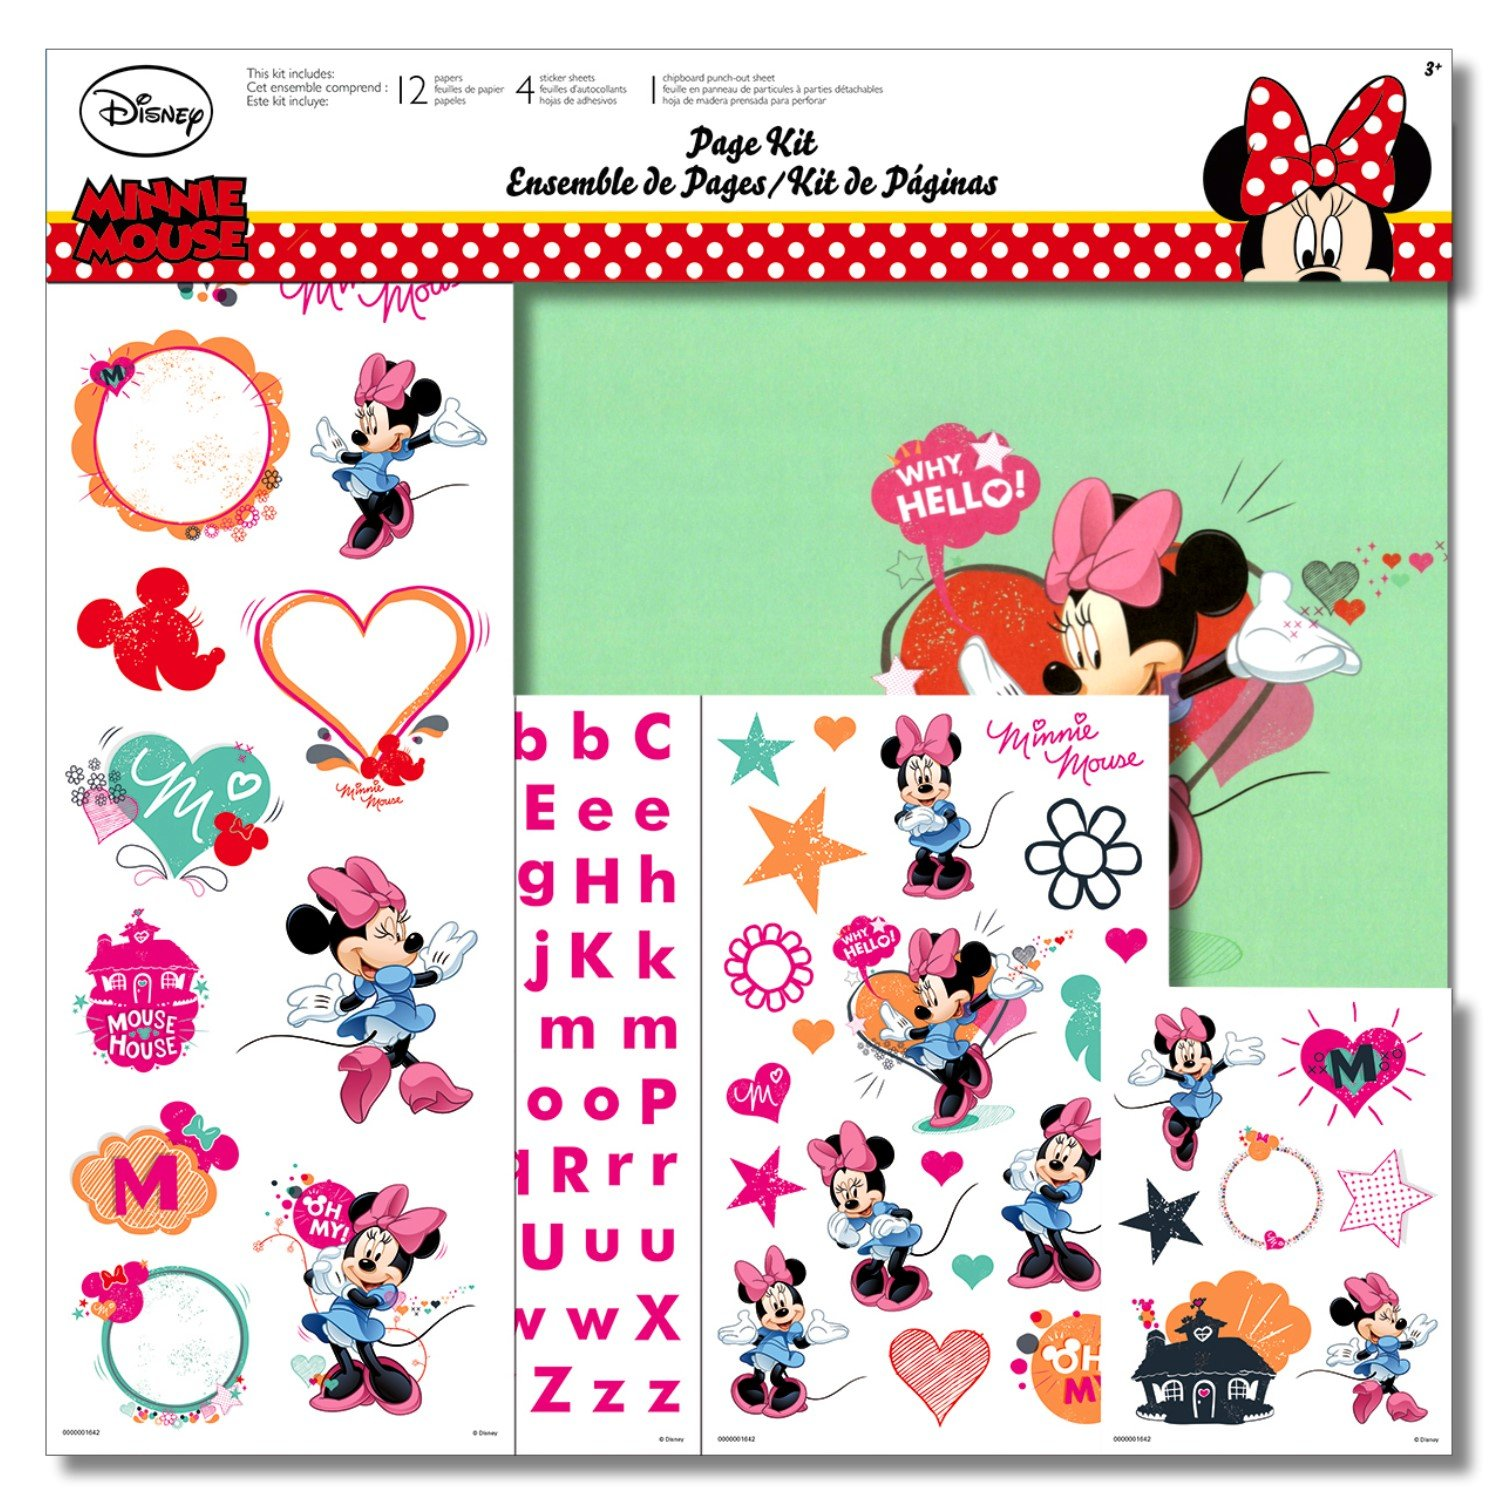 9d8ed52df Get Quotations · Disney Minnie Mouse Scrapbooking Page Kit With Minnie  Mouse Stickers, Minnie Mouse Paper, and